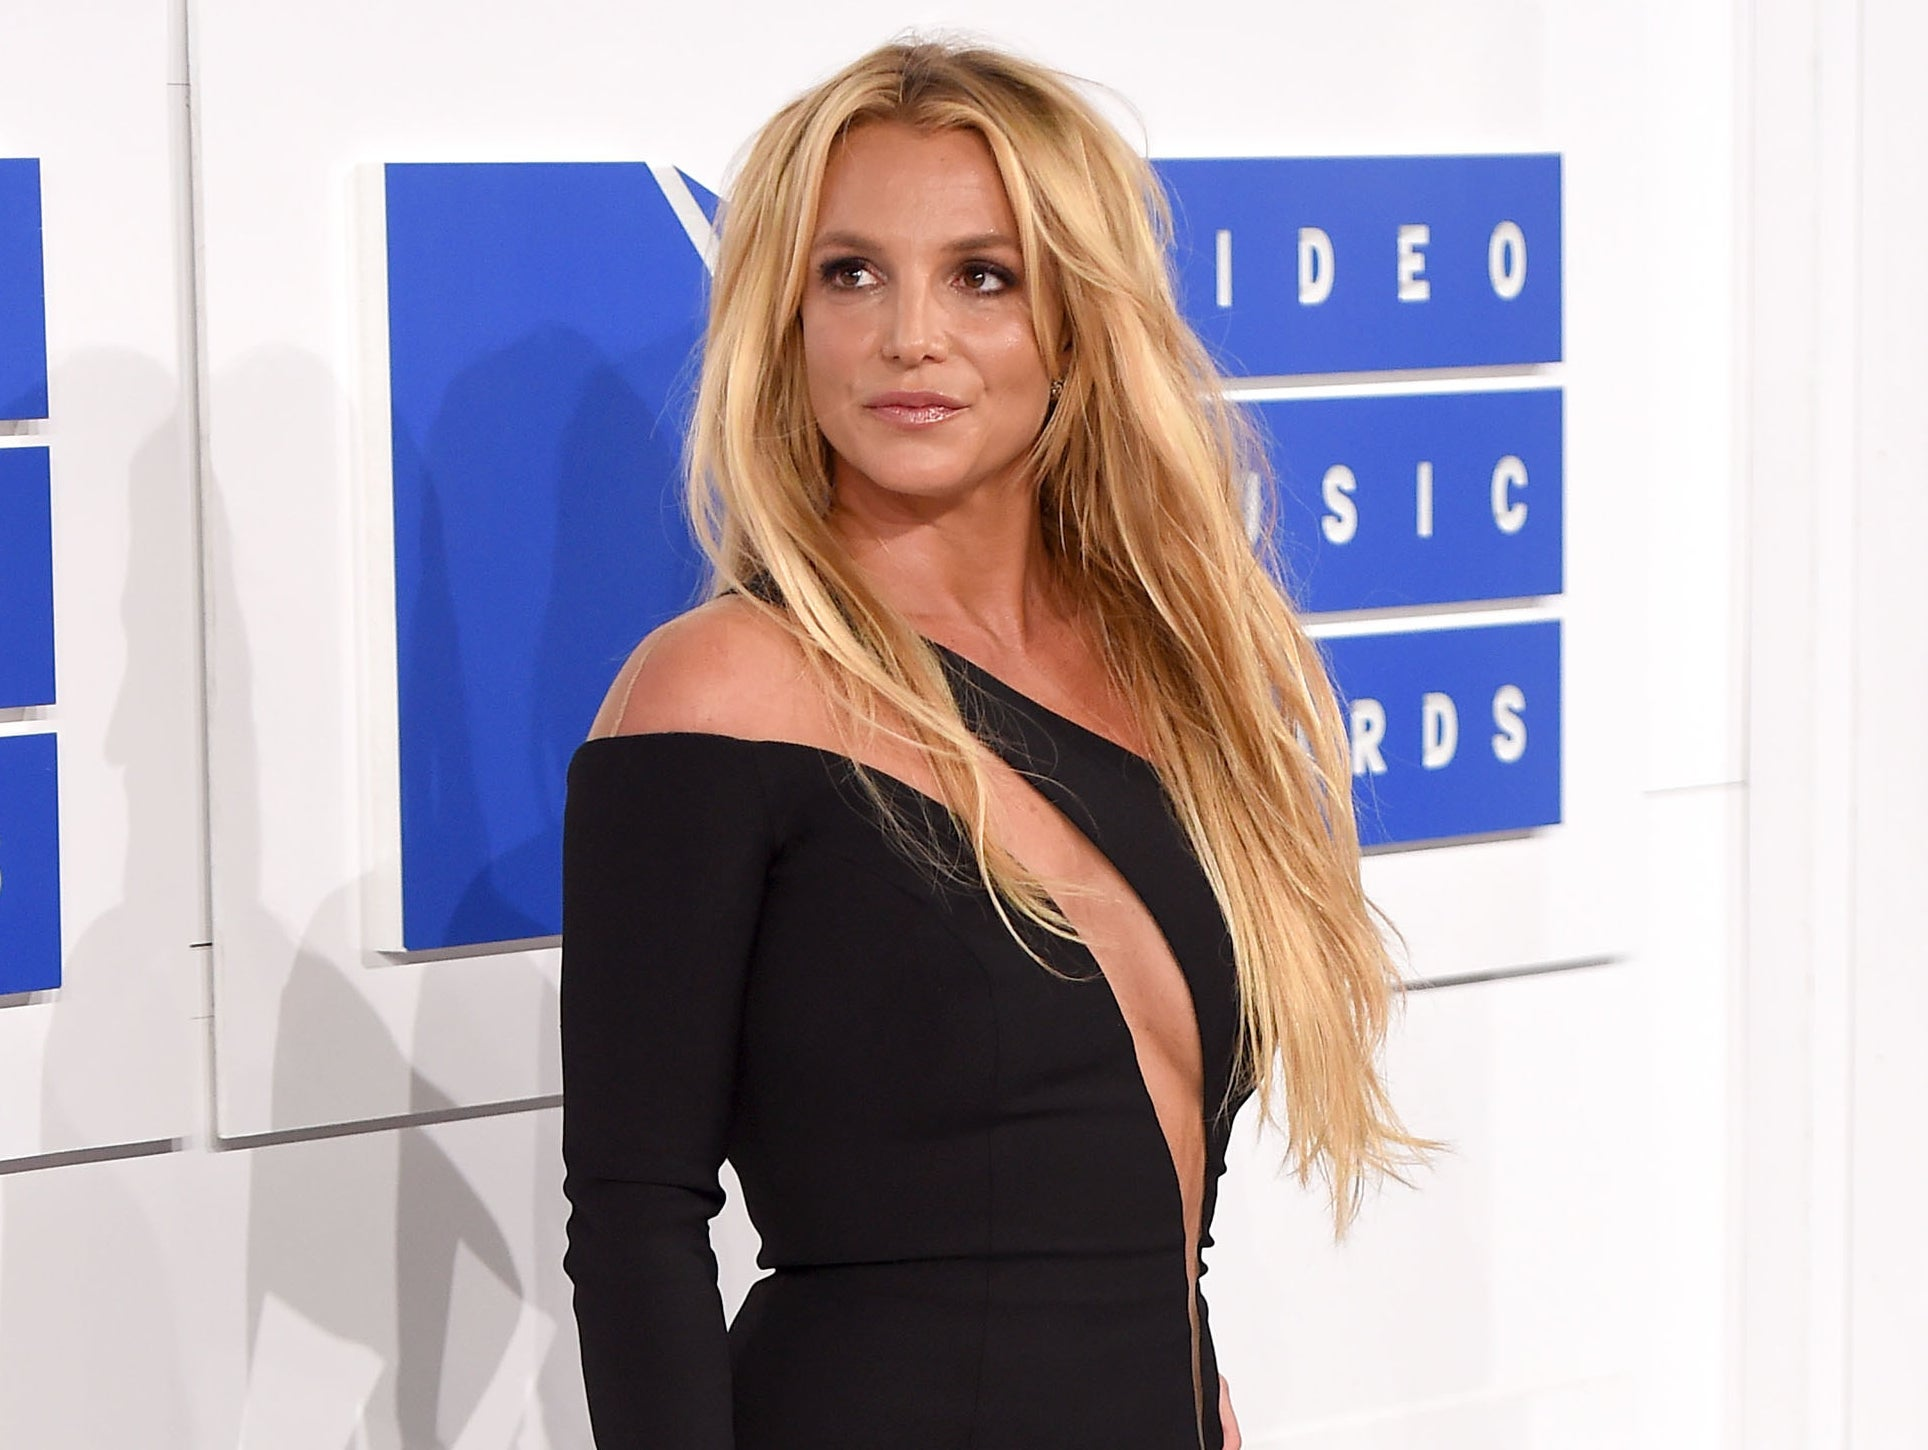 Britney looks into the distance while posing on a red carpet